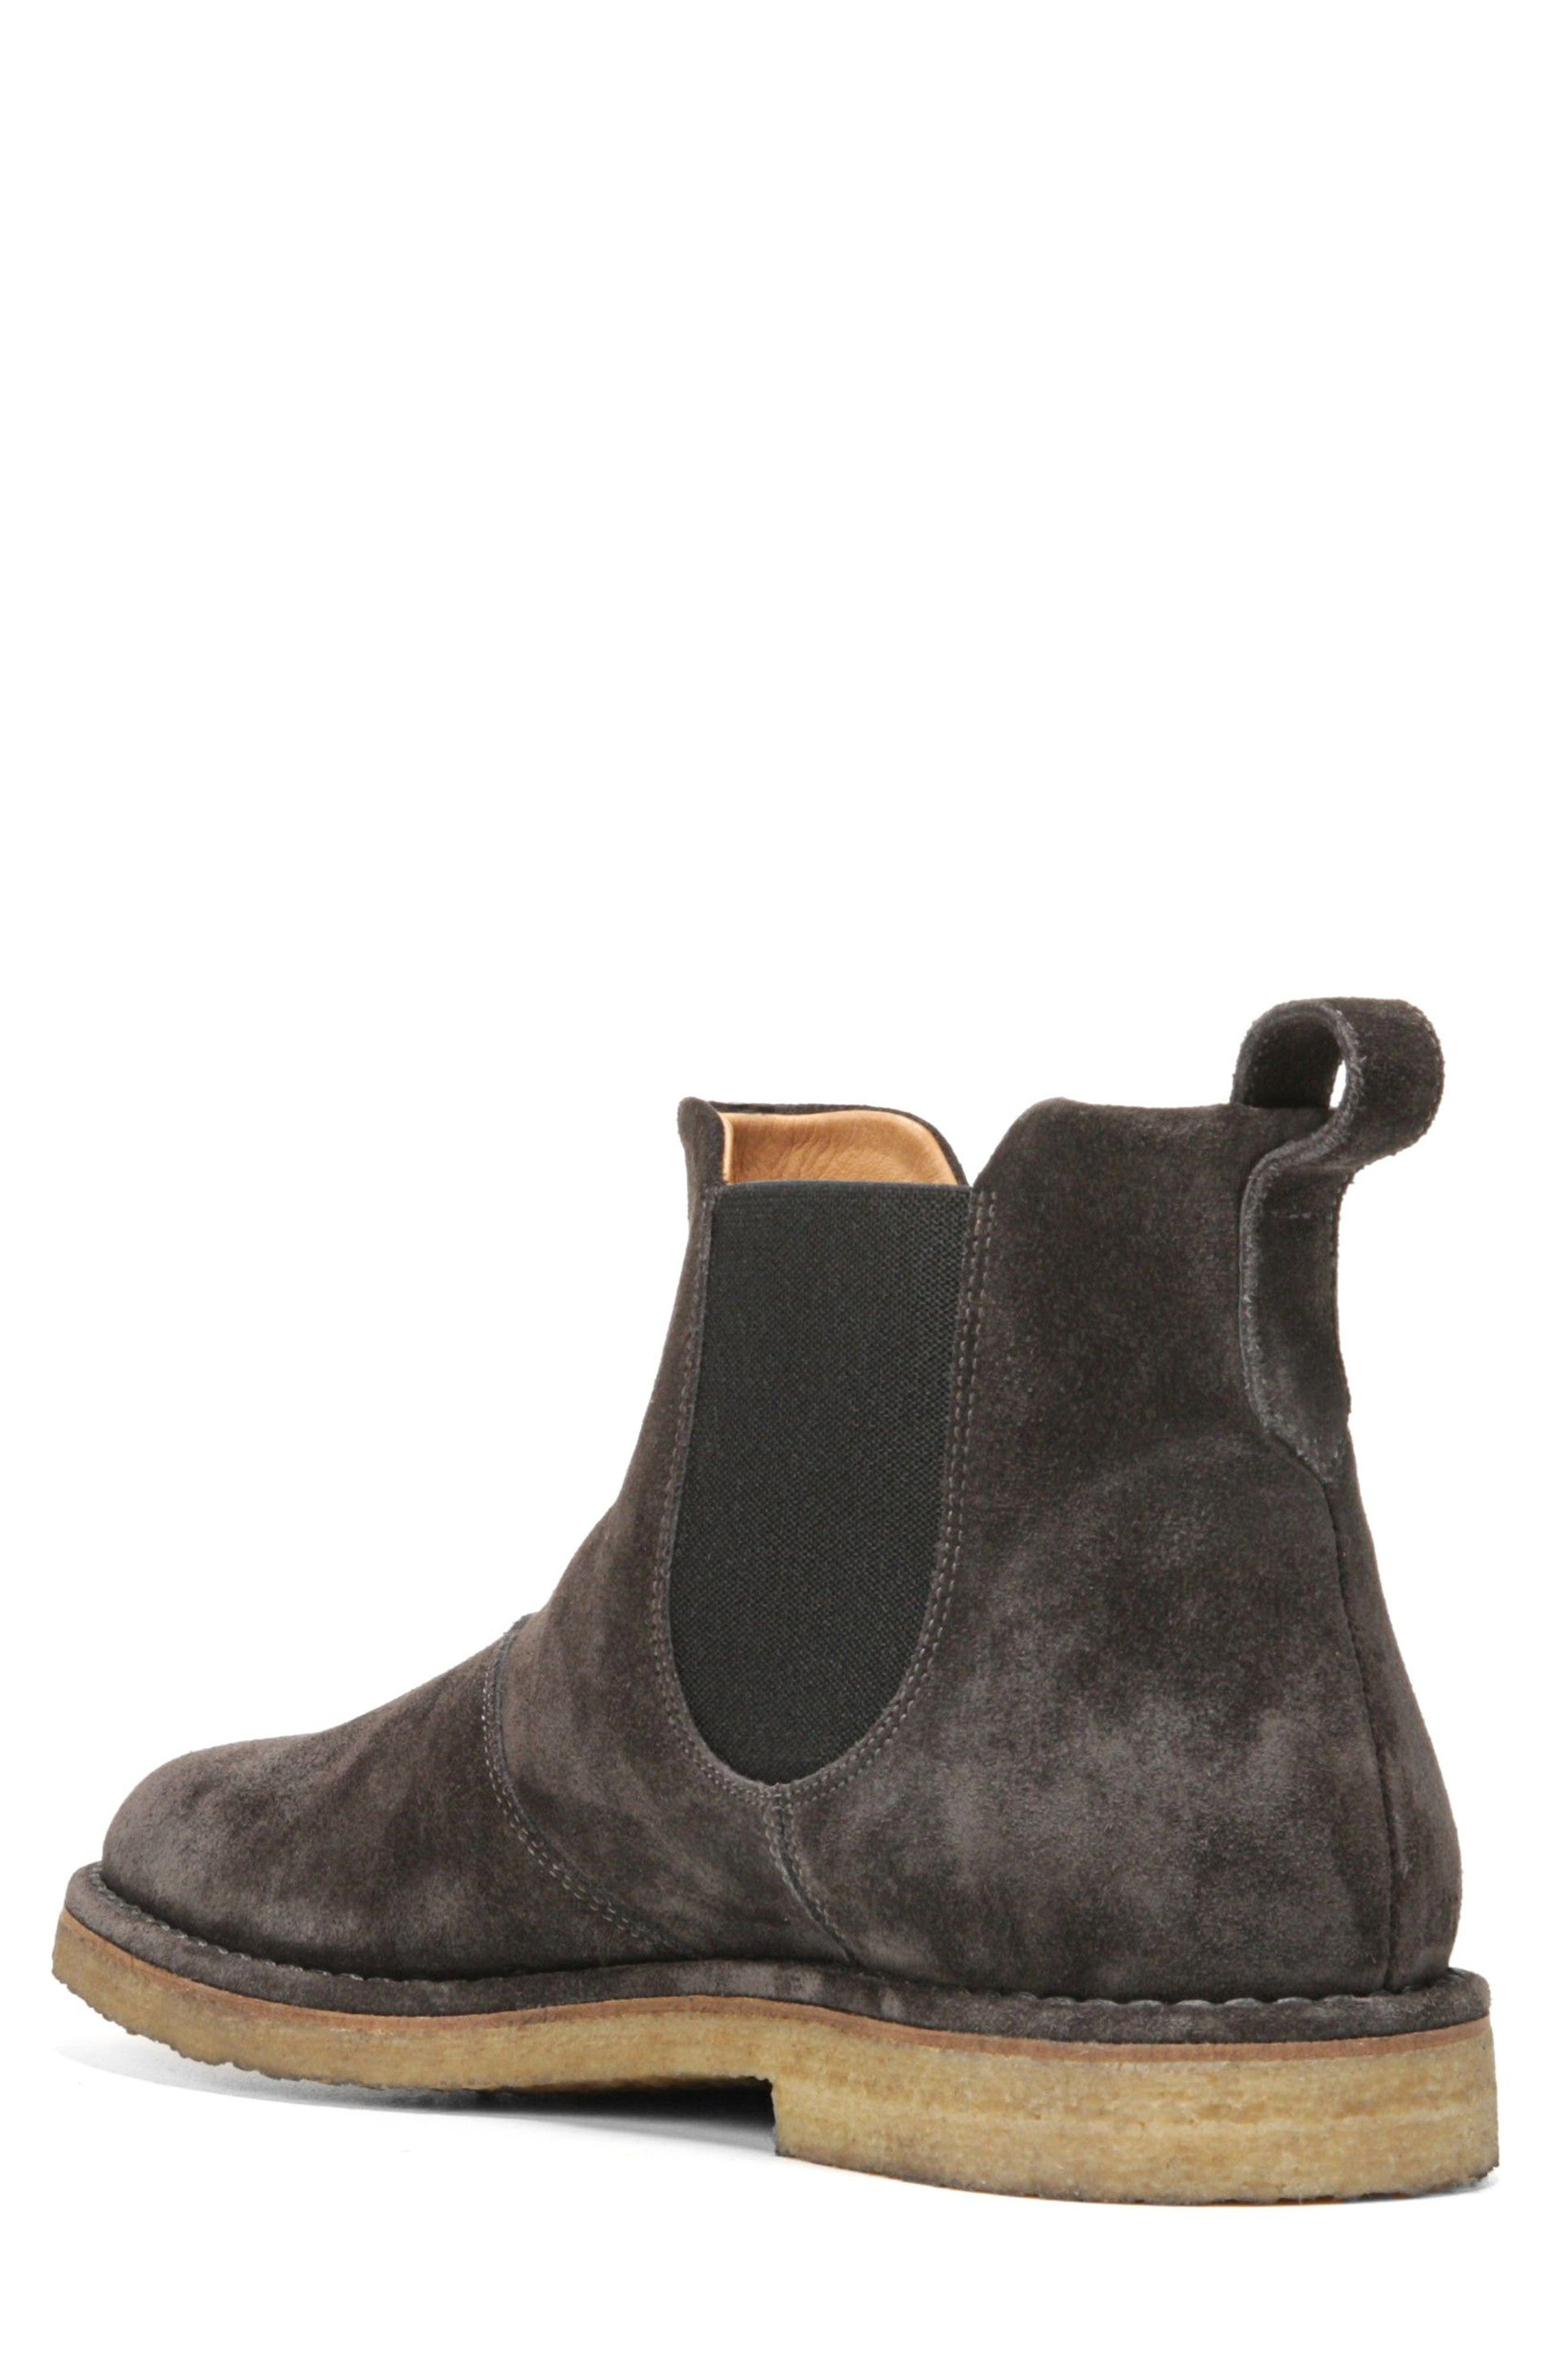 VINCE,                             'Sawyer' Chelsea Boot,                             Alternate thumbnail 2, color,                             021